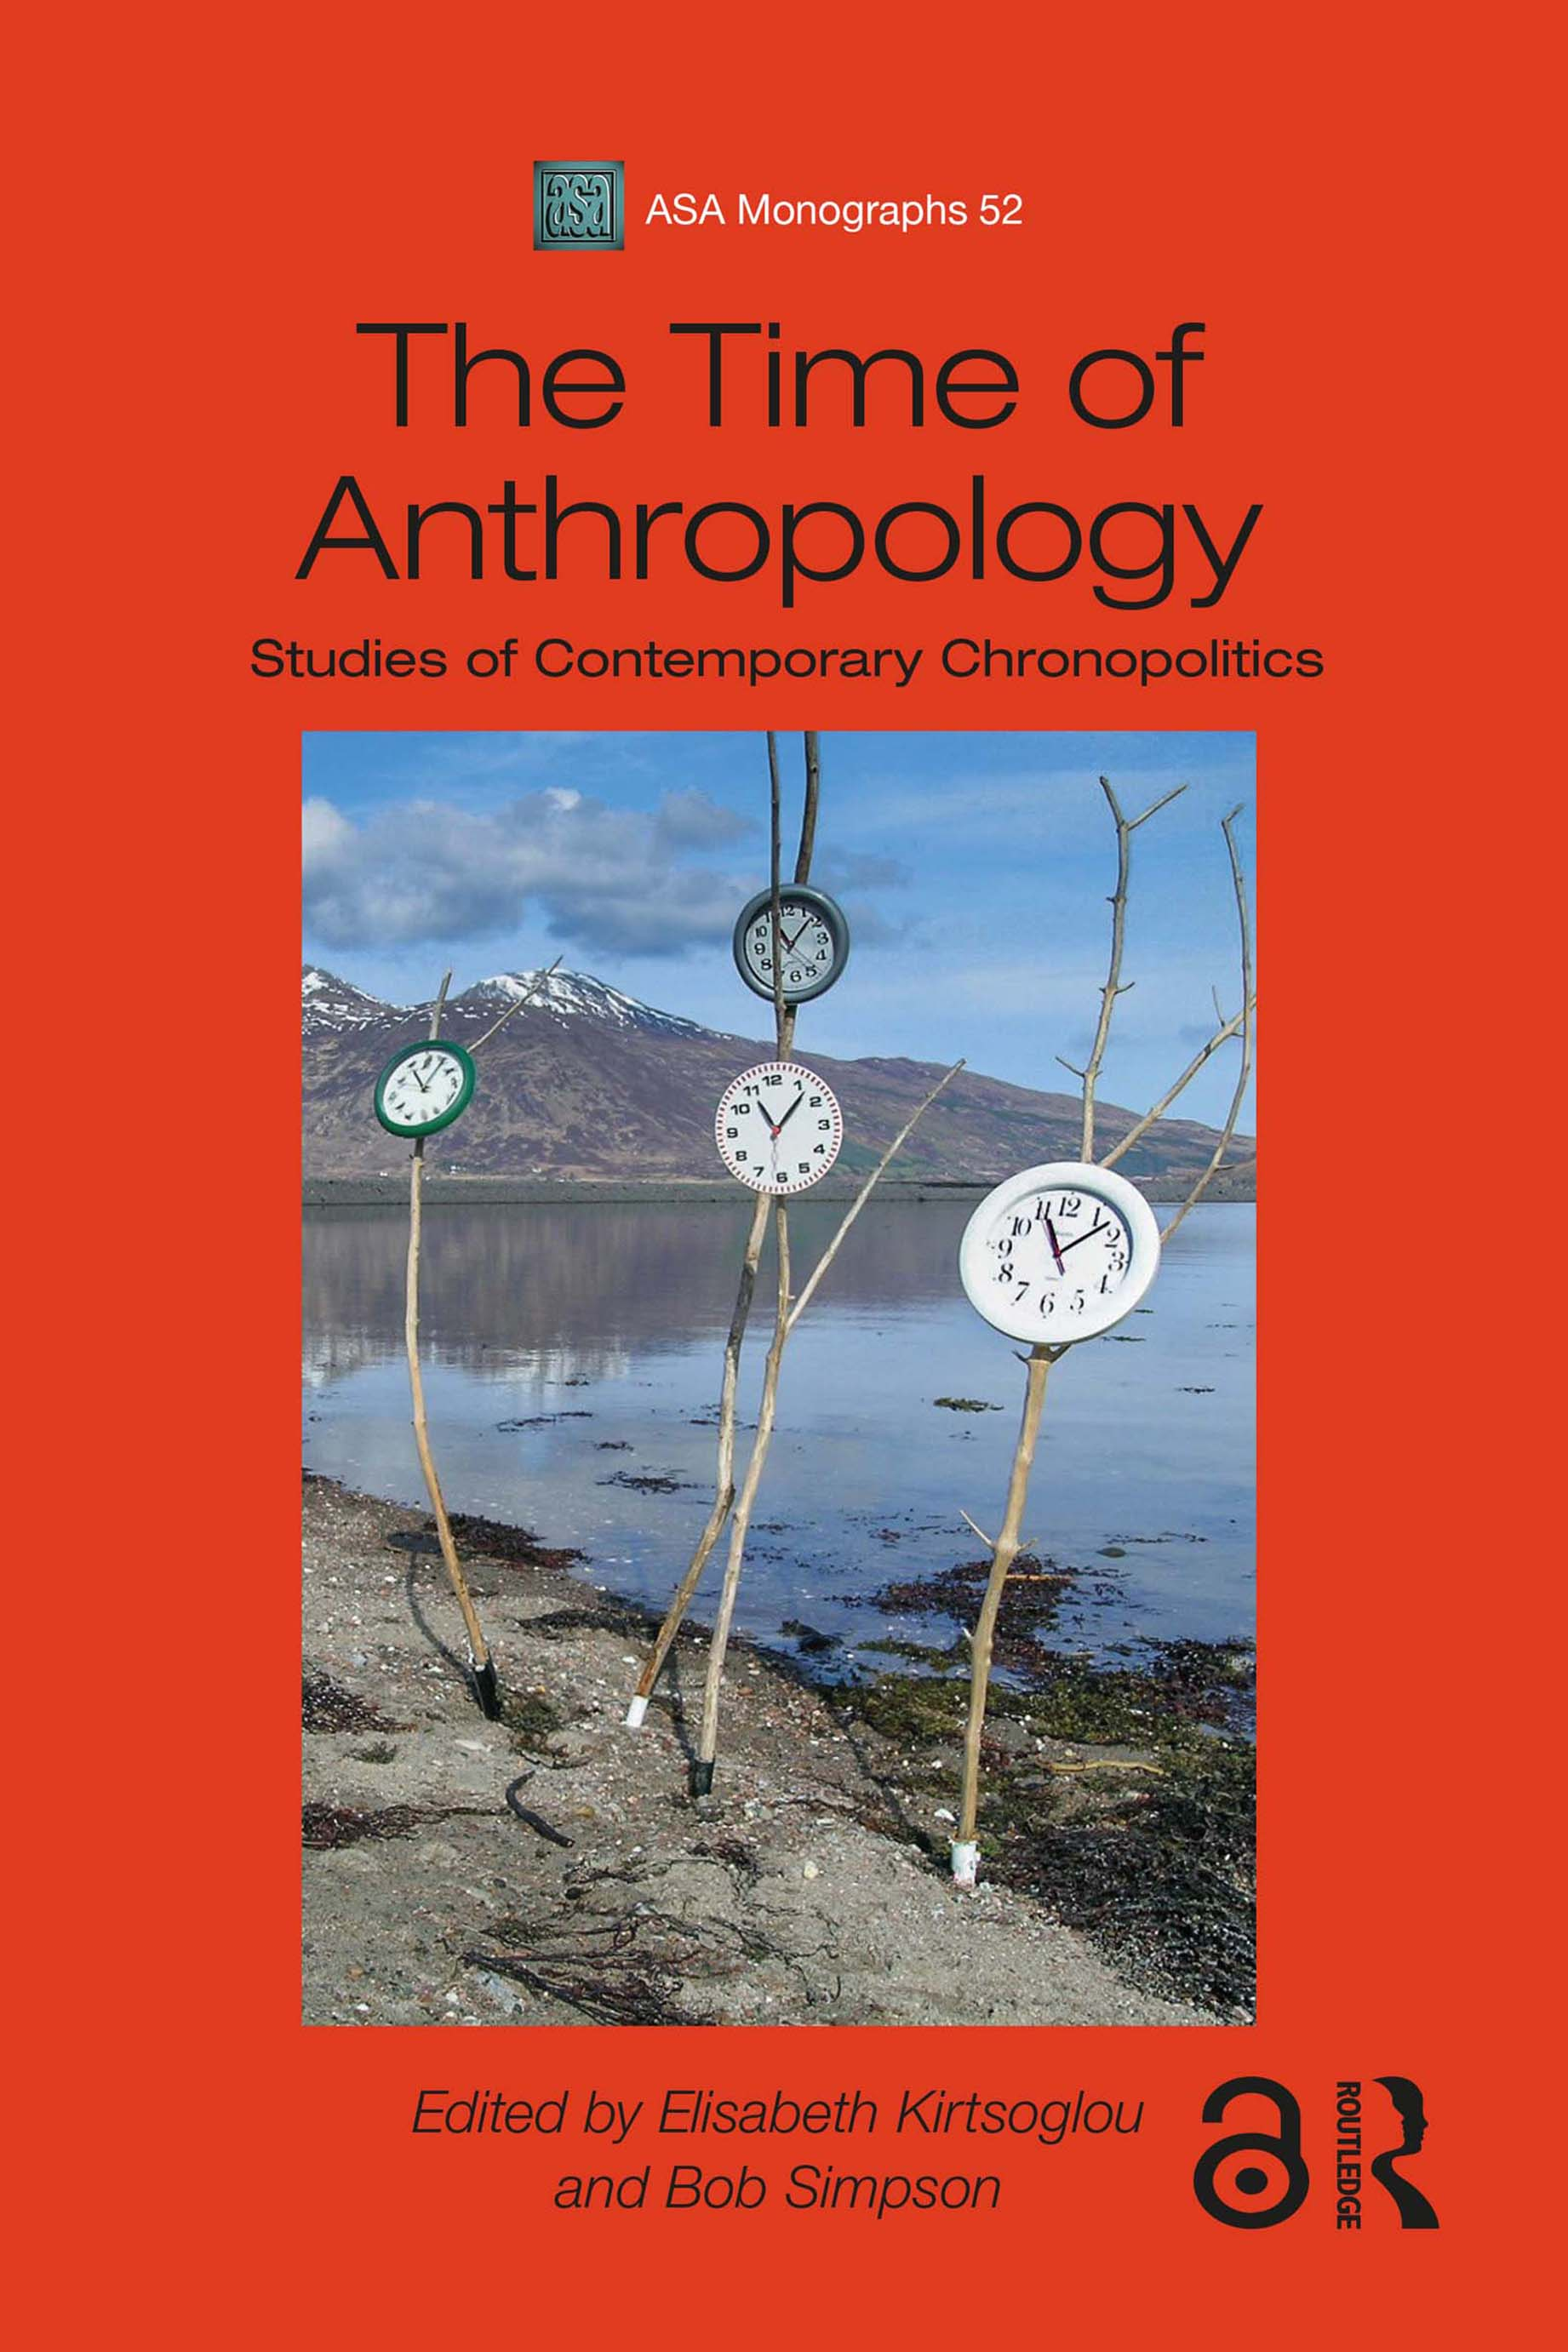 Book cover of The Time of Anthropology